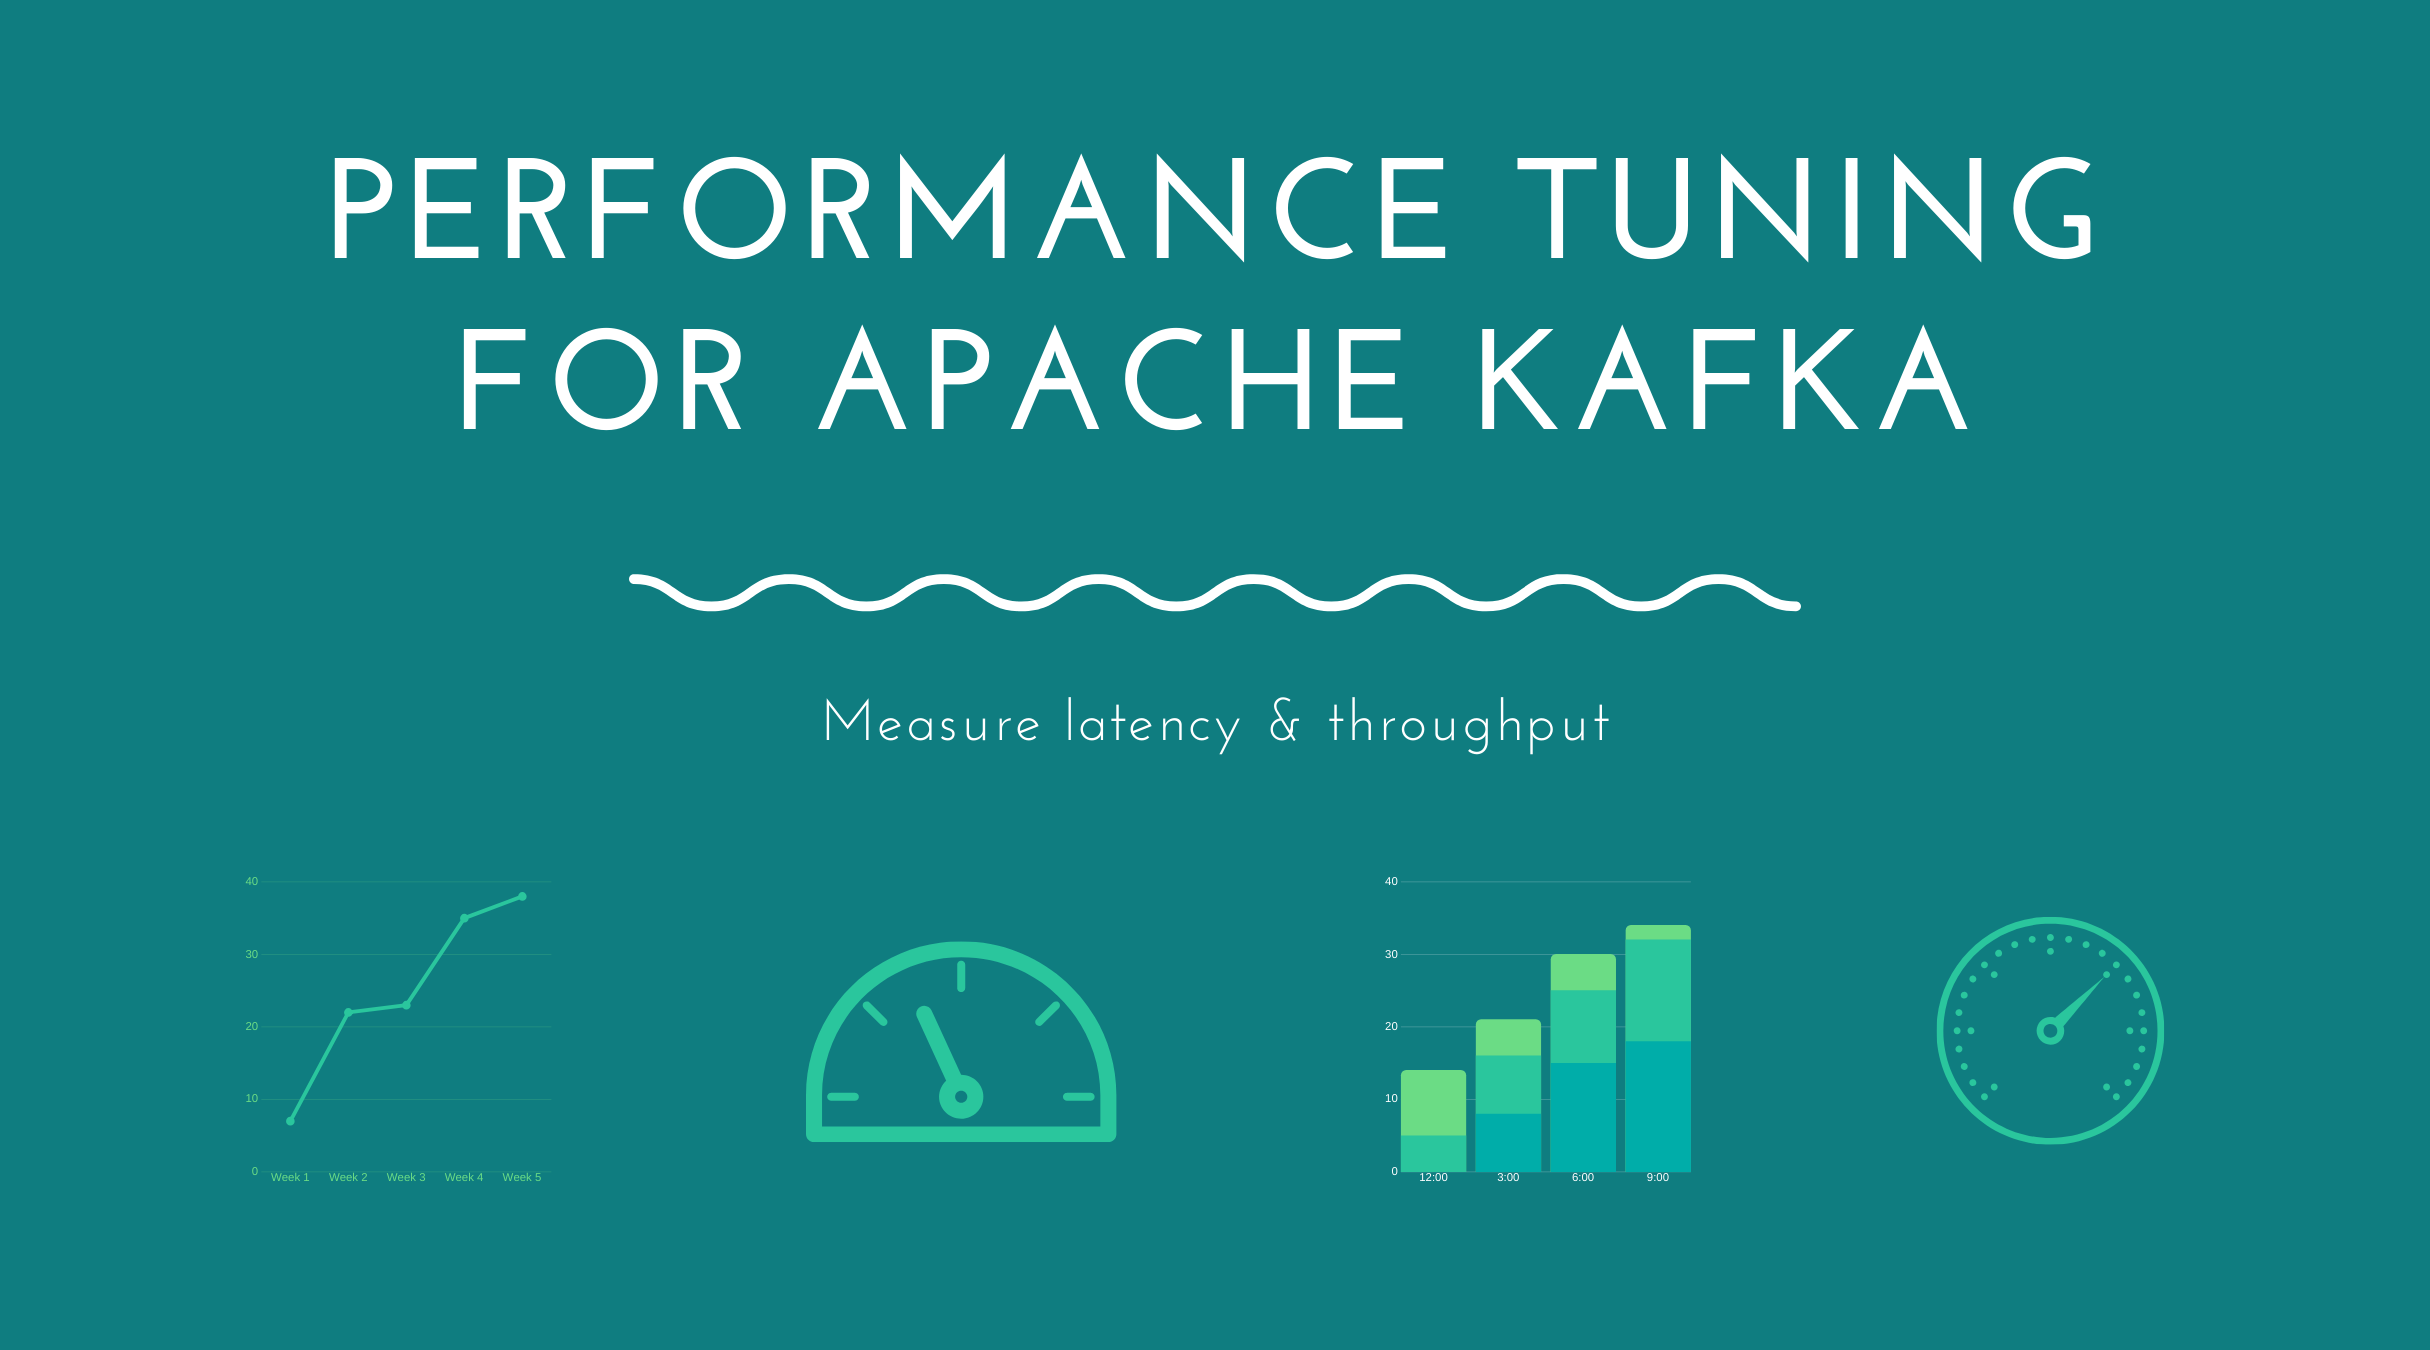 Performance Tuning for Apache Kafka in large font with images of a line chart, speedometer chart, and vertical bar graph.